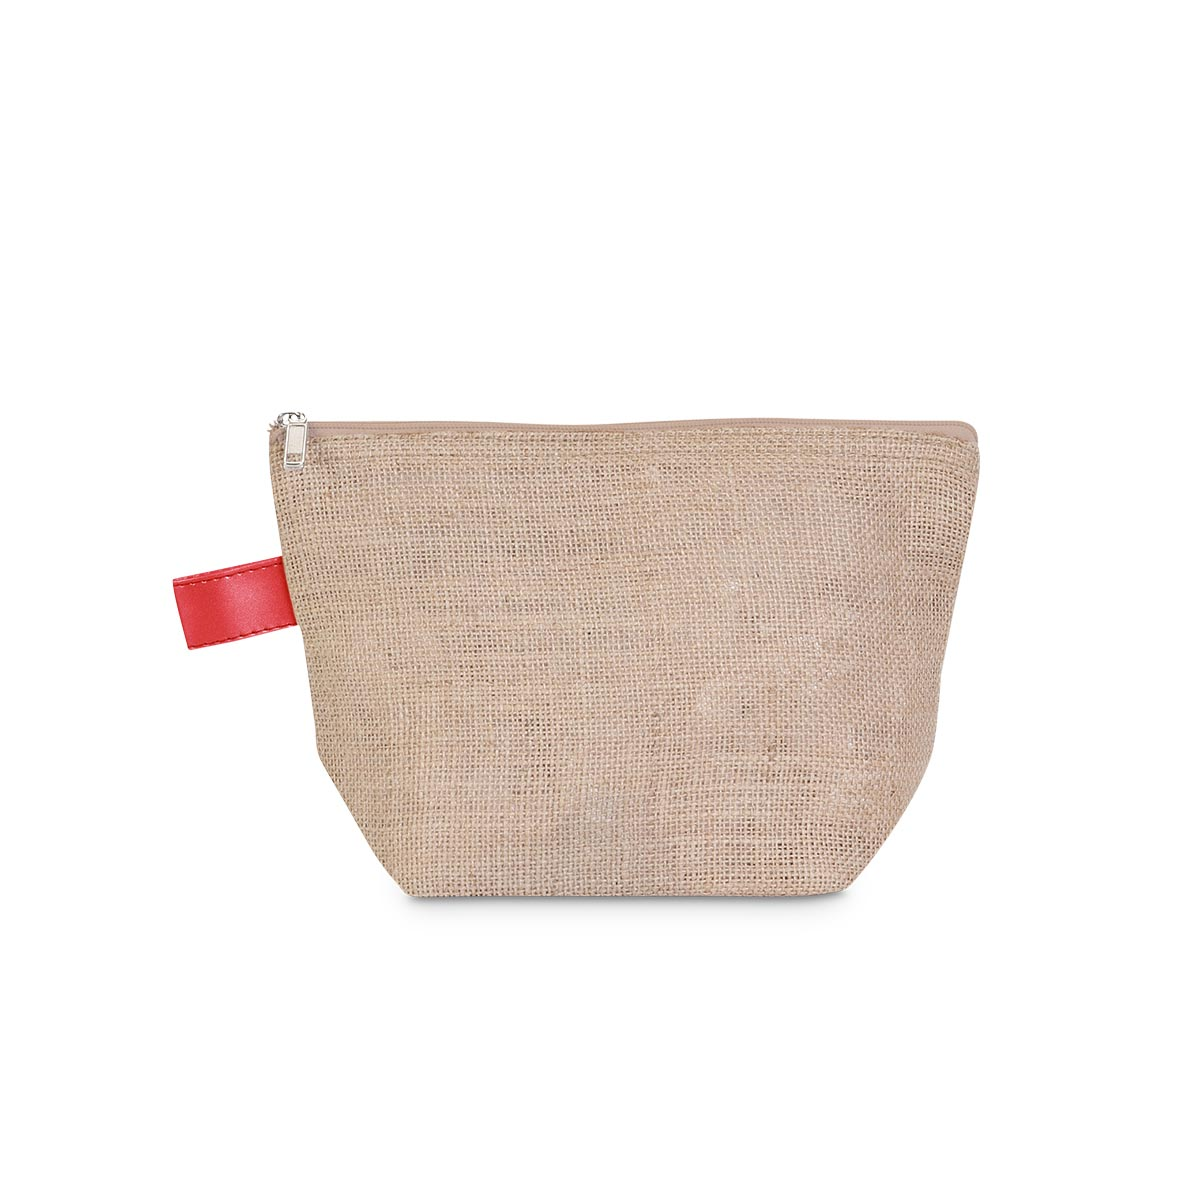 khaki jute zipper bag pouch, red trim